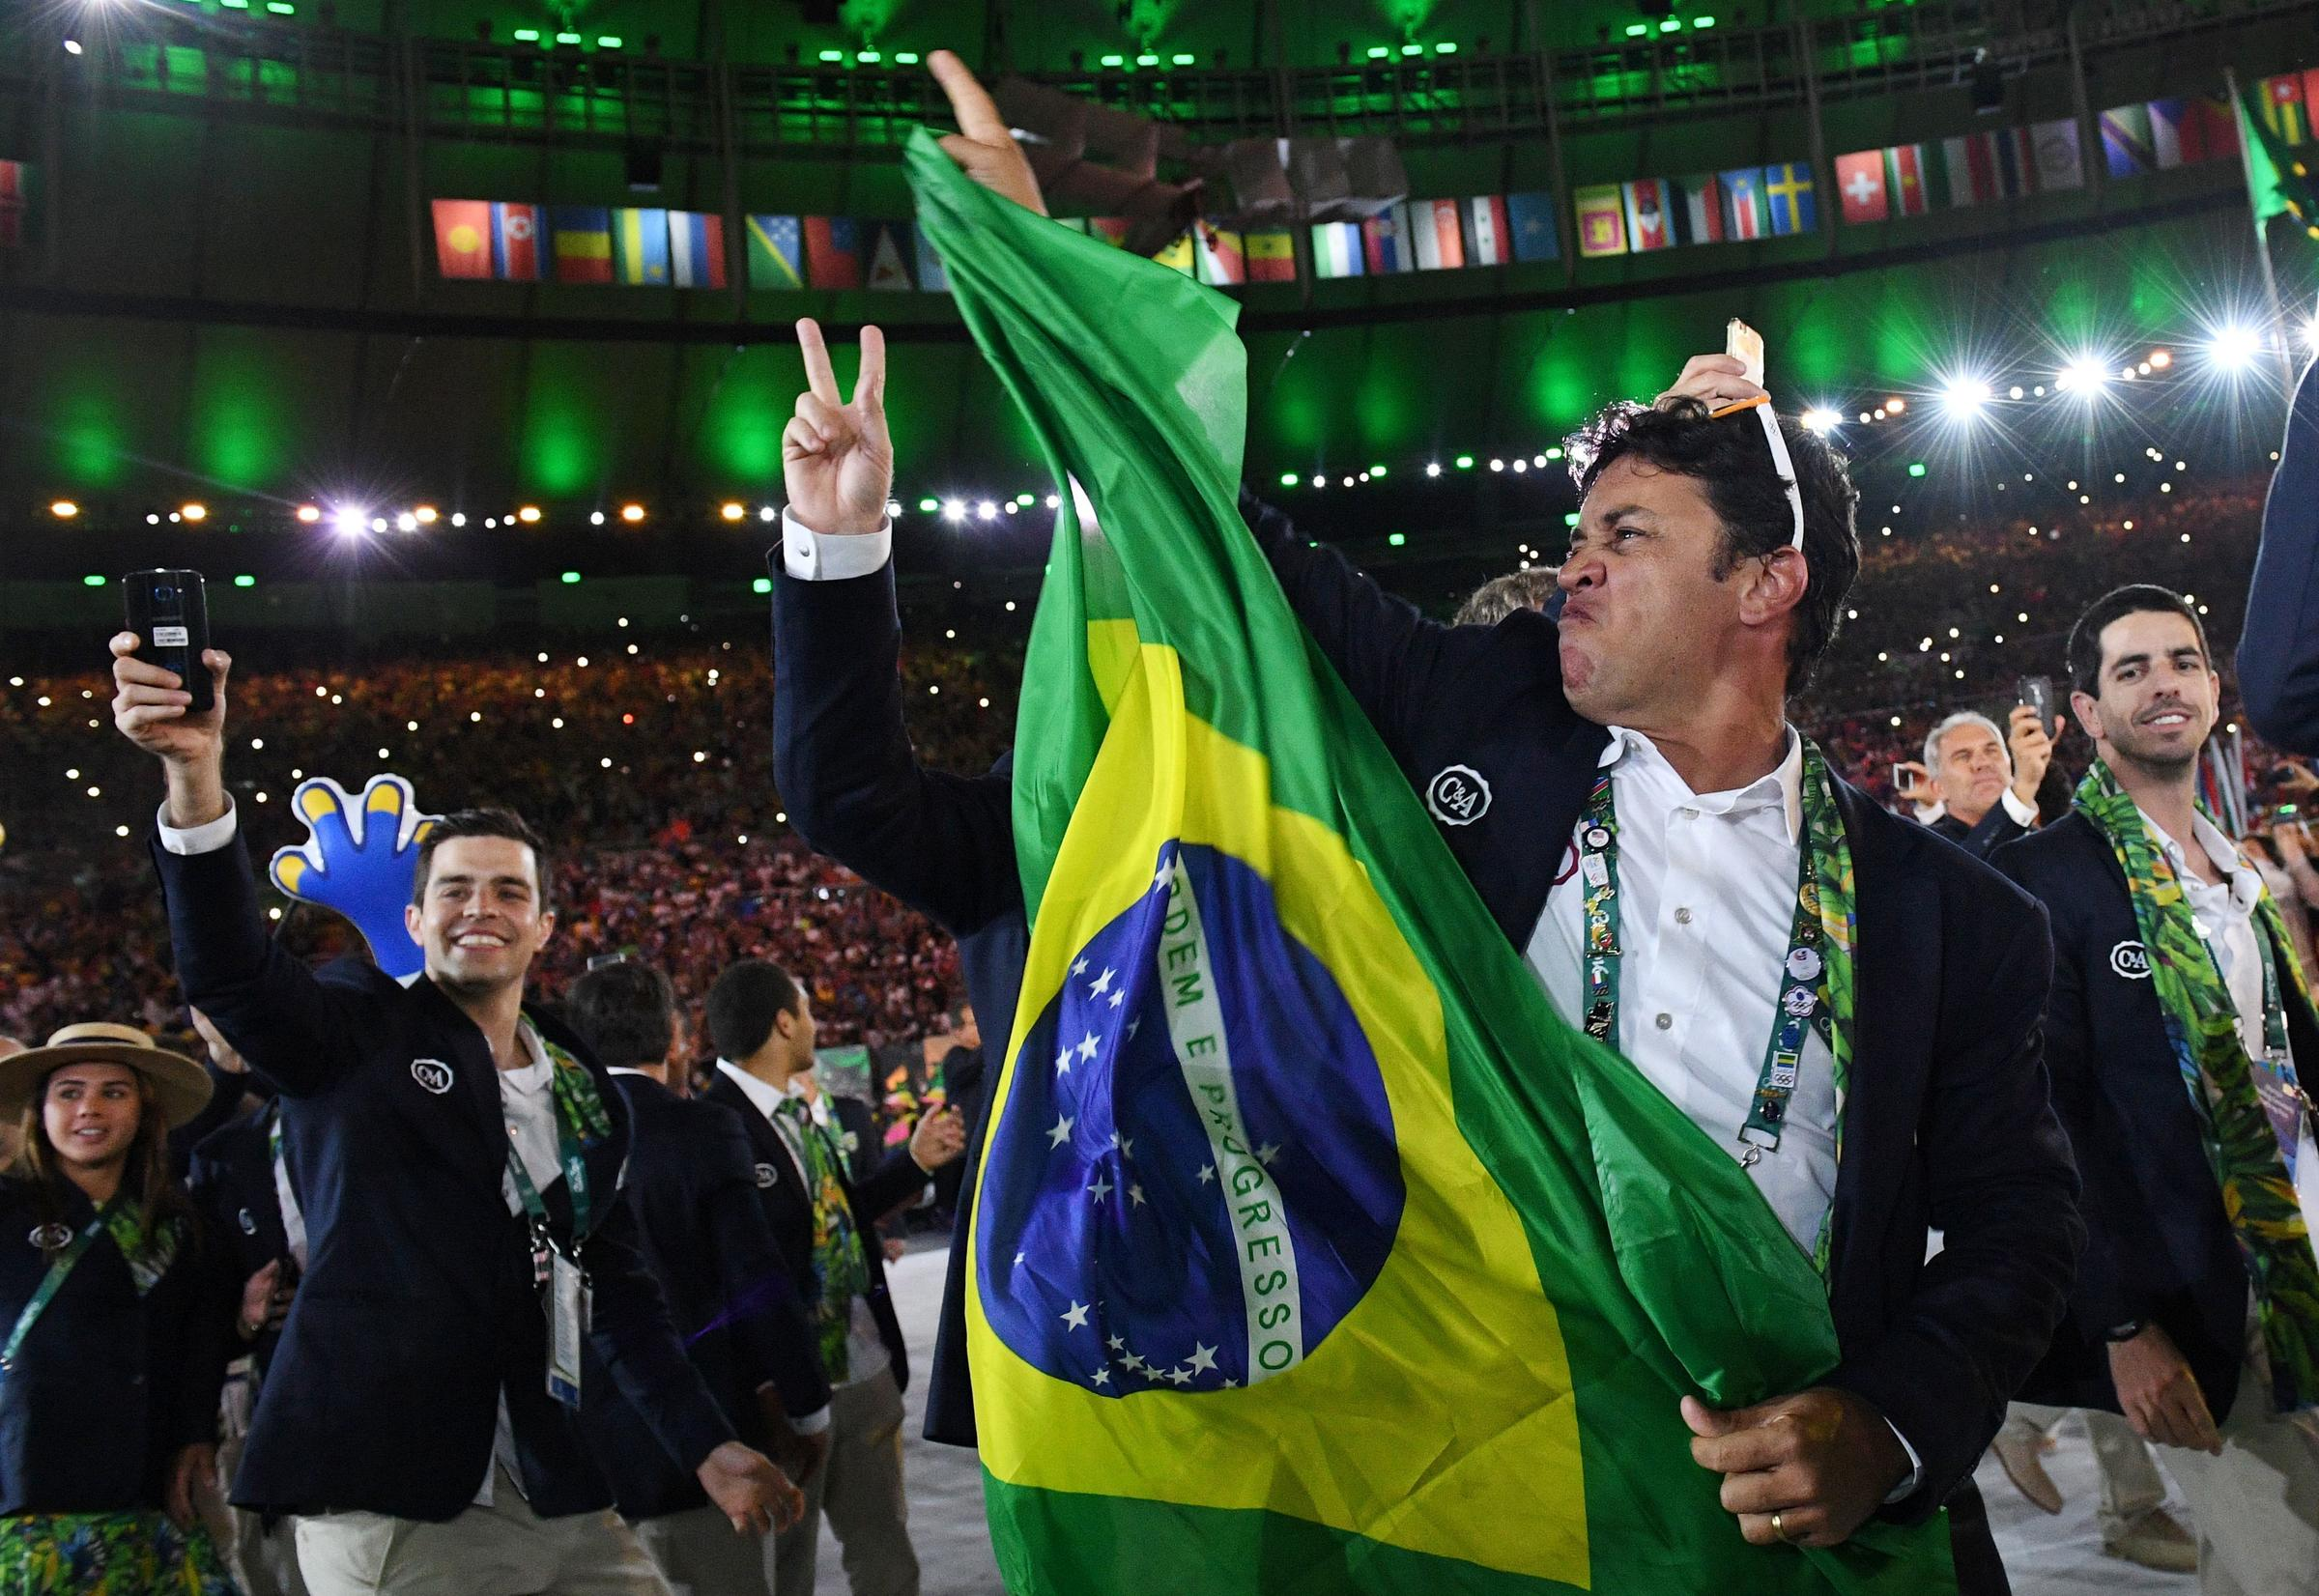 Rio Throws A Party For The World, Kicking Off The 2016 Olympics